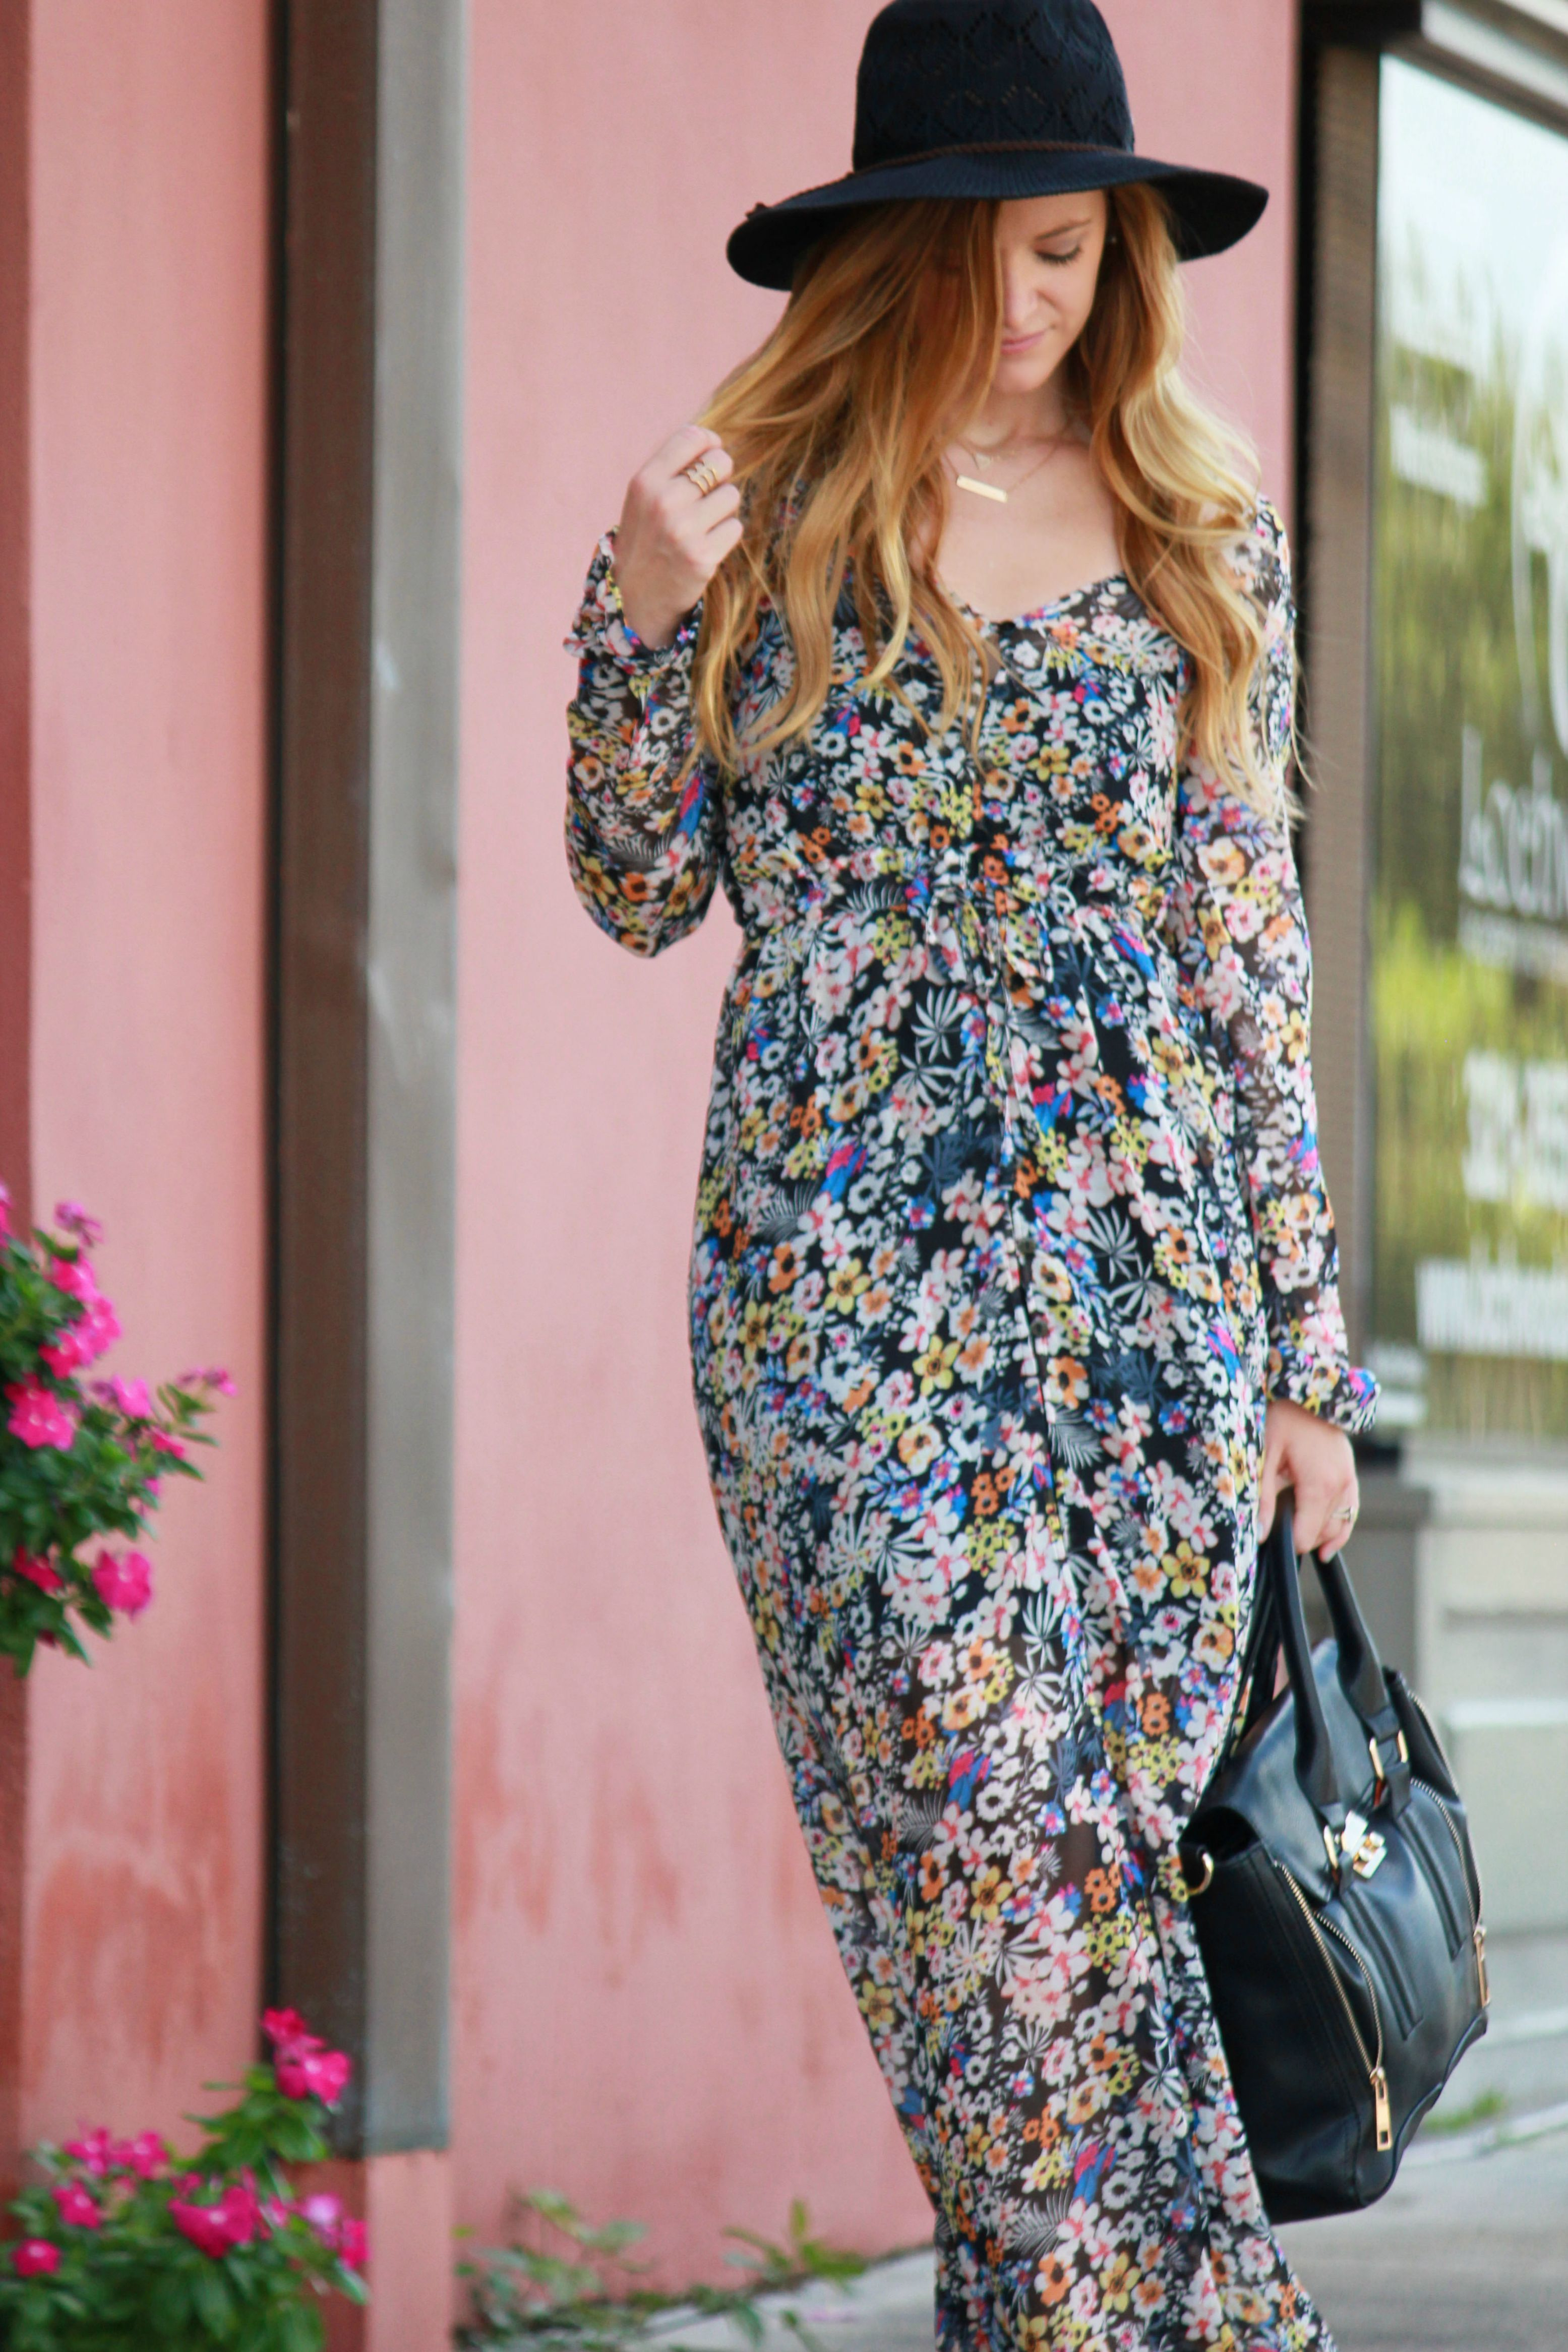 styling an oasap floral maxi with a black free people hat, tjmaxx sandals, and layered and long necklaces for a fall transition outfit.